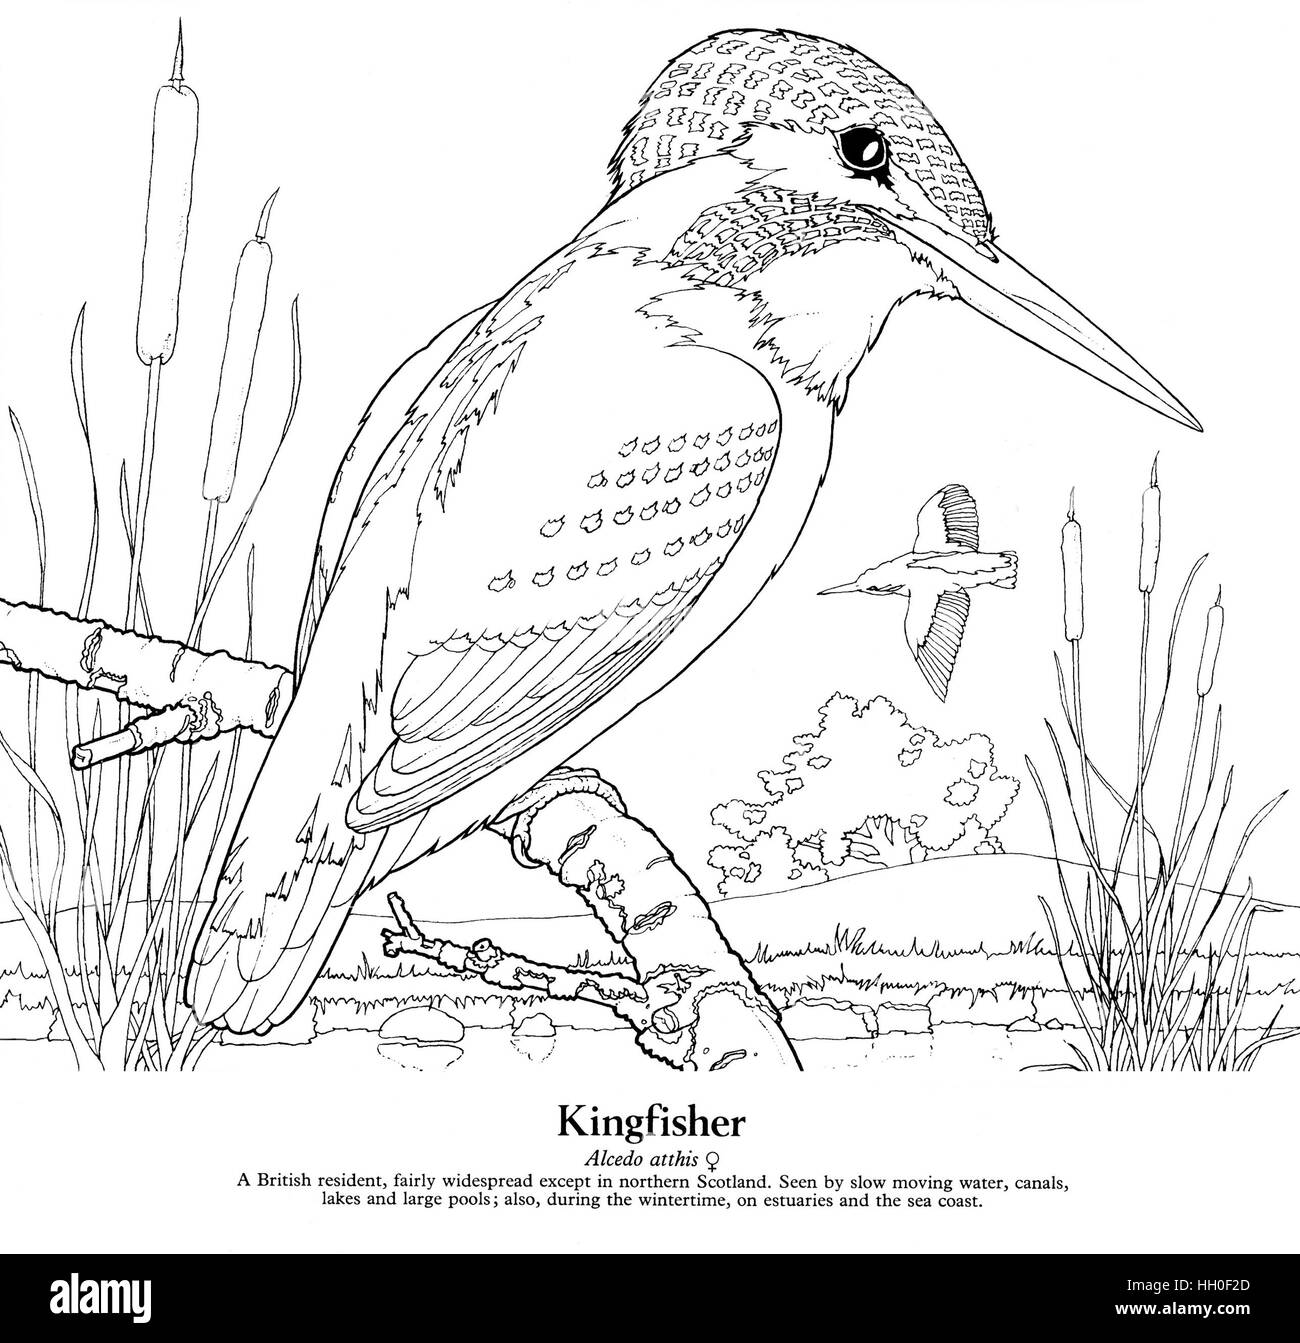 Line Drawing Kingfisher : Kingfisher alcedo atthis black on white line drawing